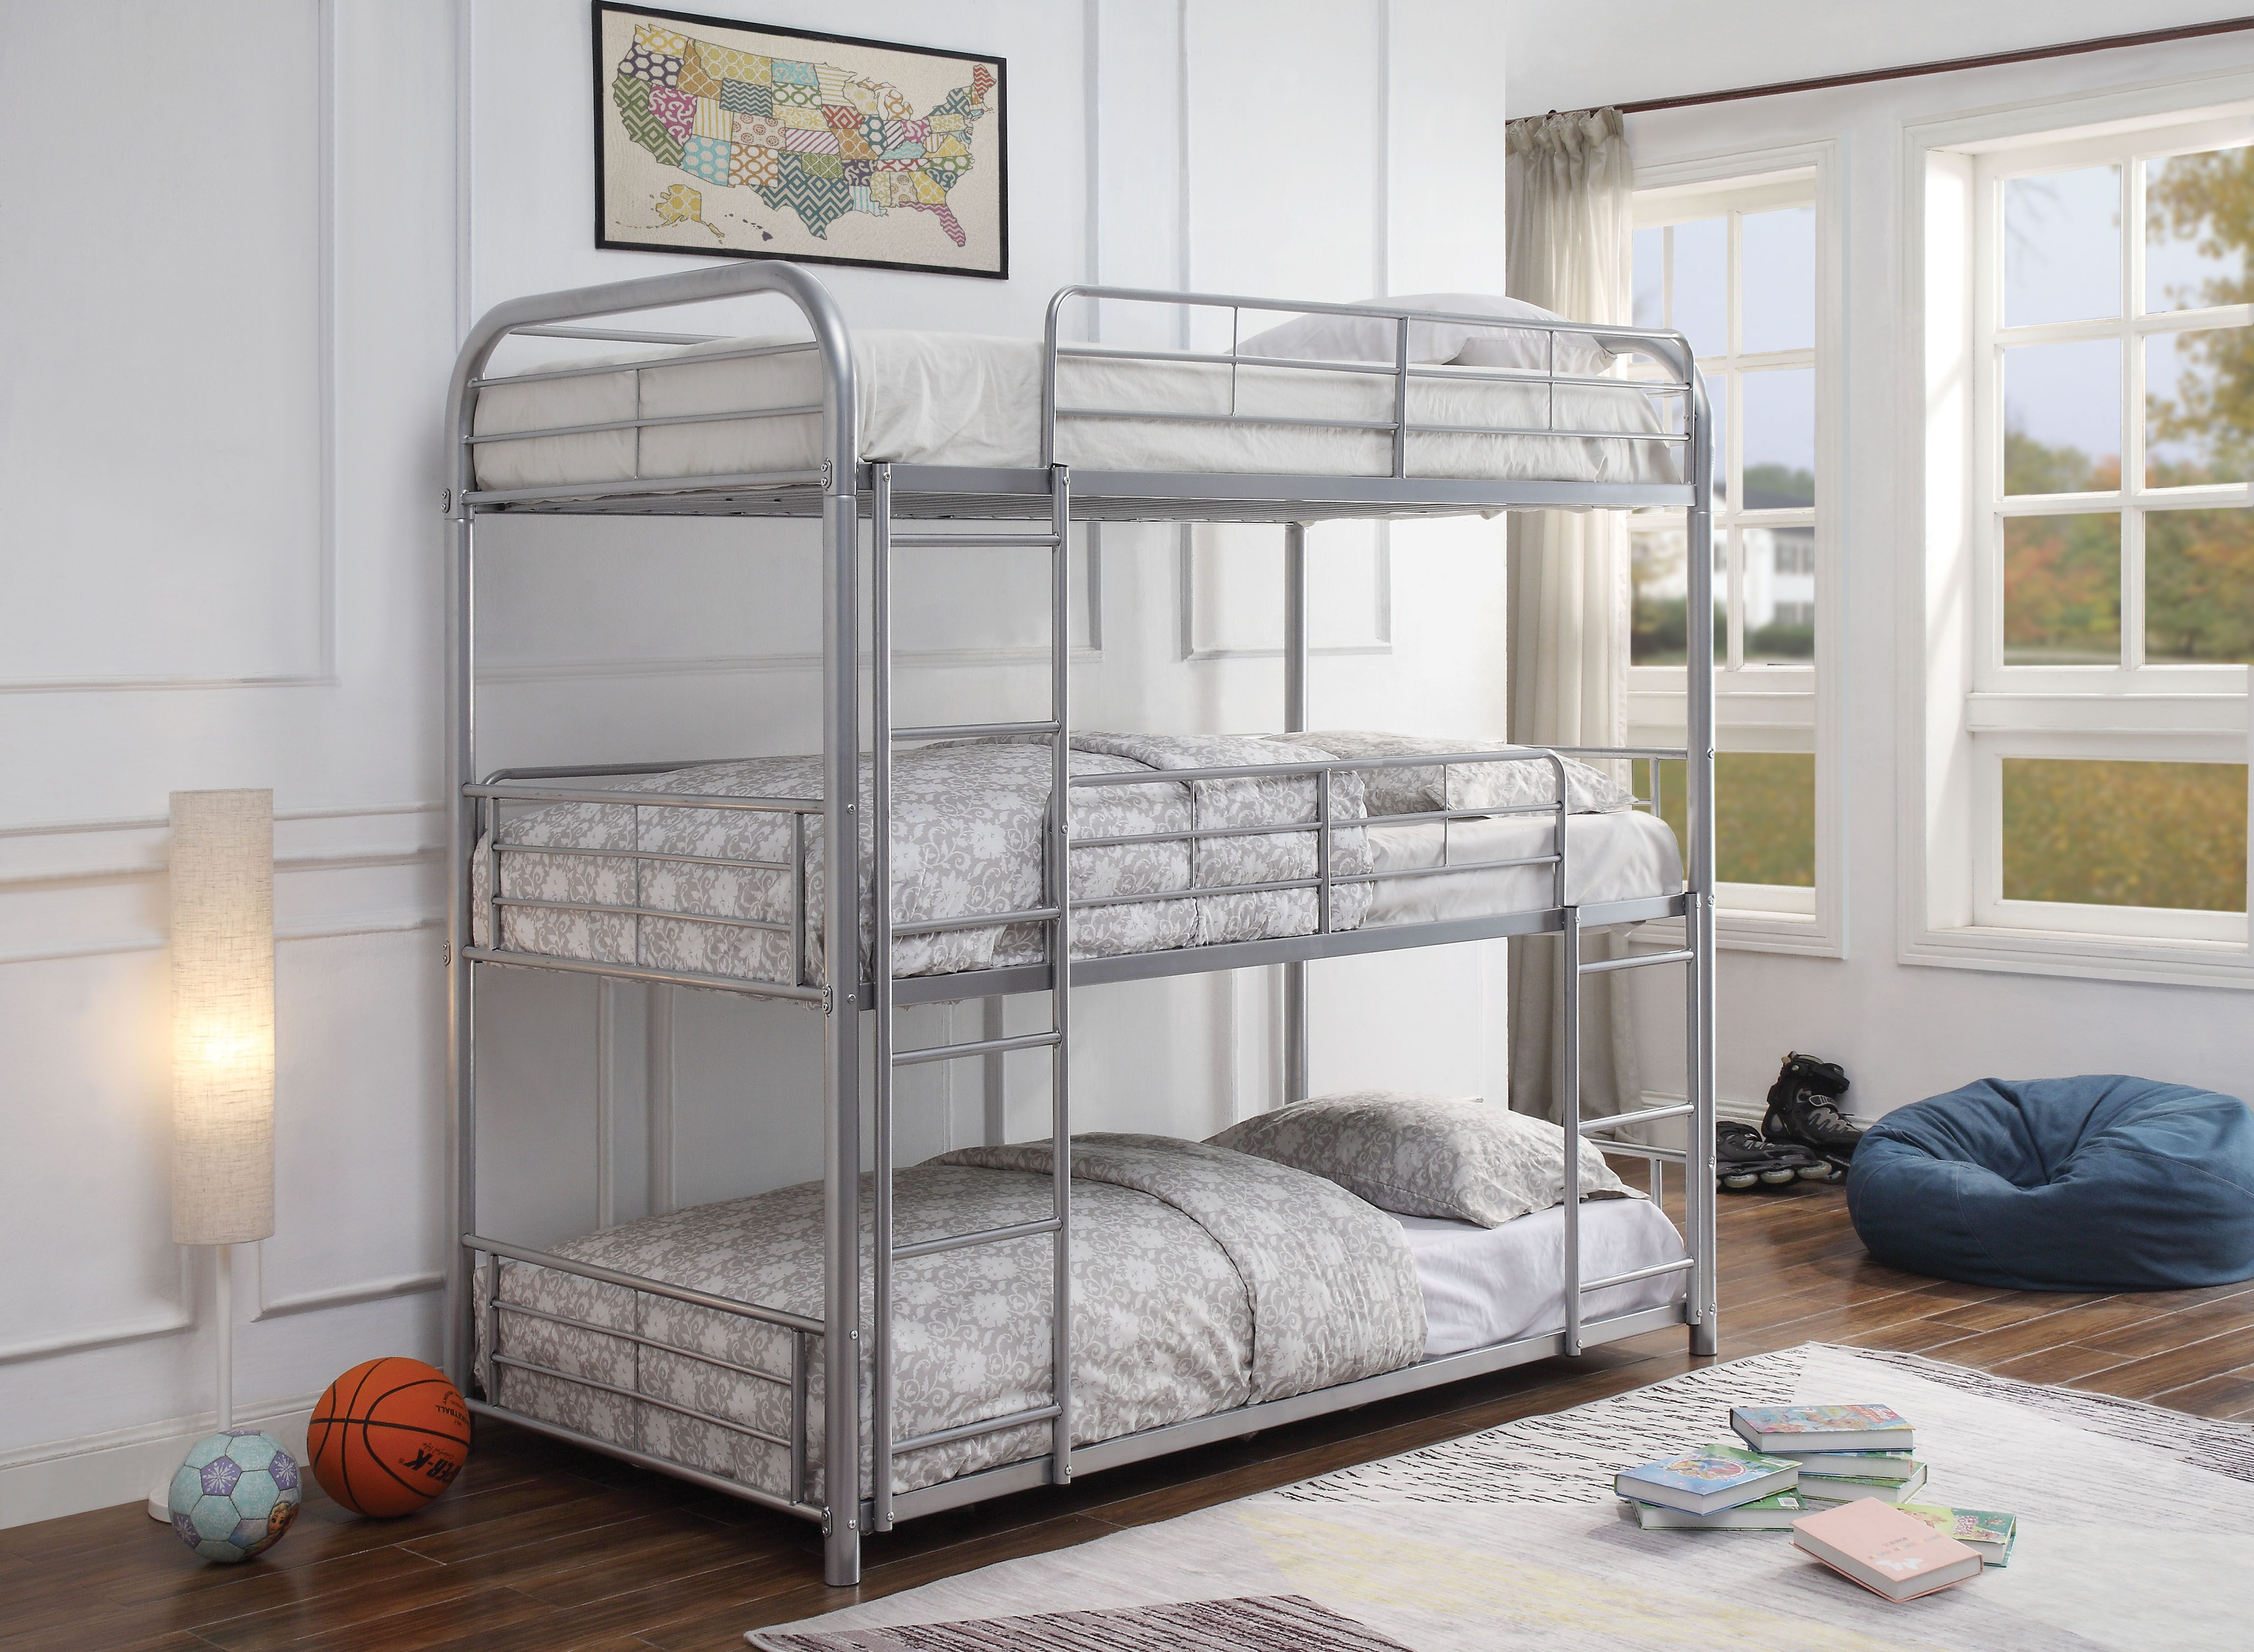 AC 38100 CAIRO SILVER BUNKBED